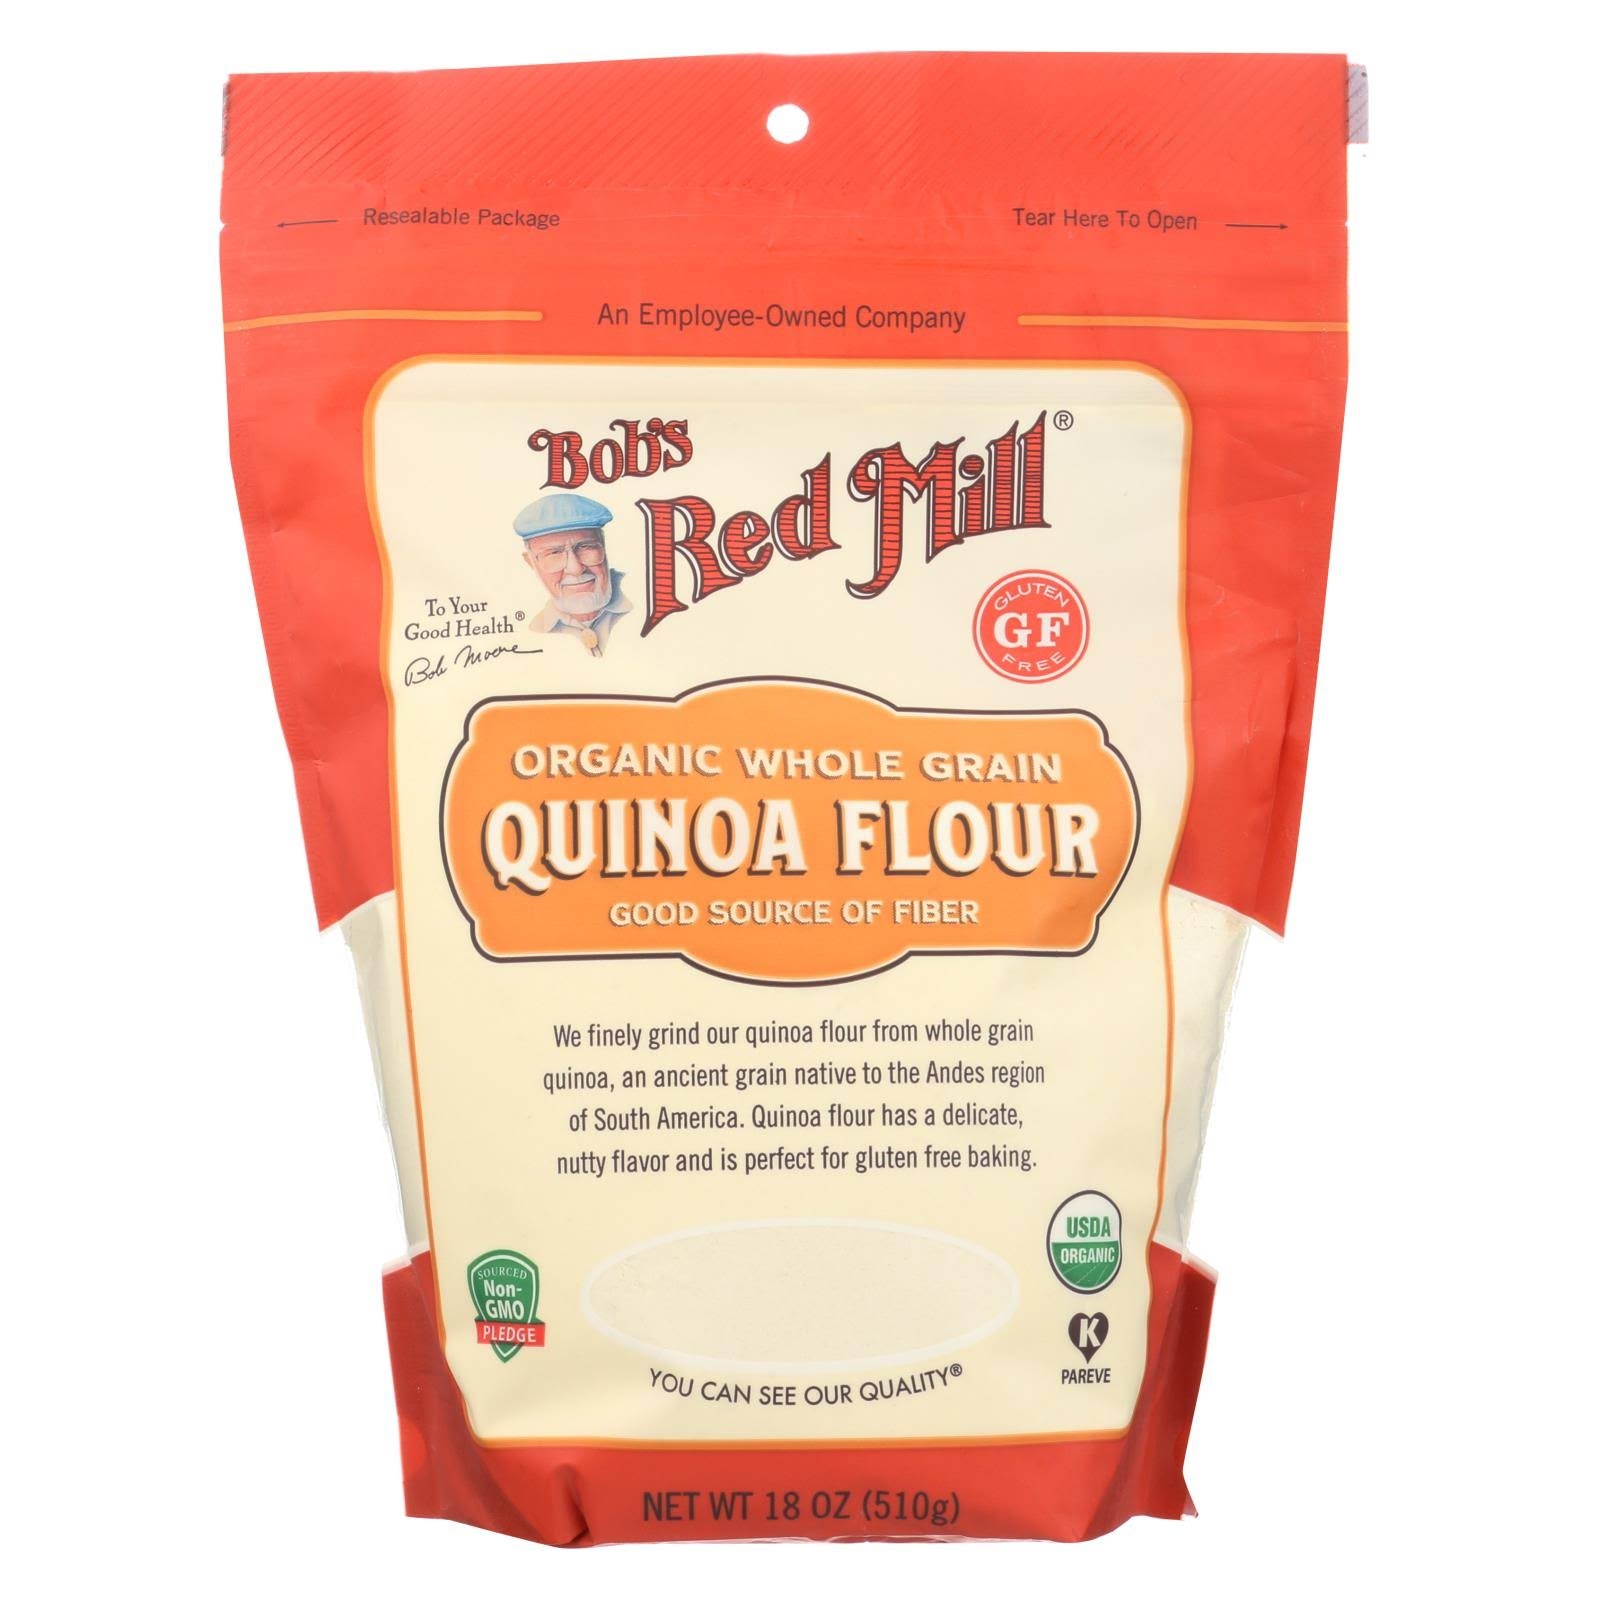 Bobs Red Mill Flour, Quinoa, Organic, Whole Grain - 18 oz